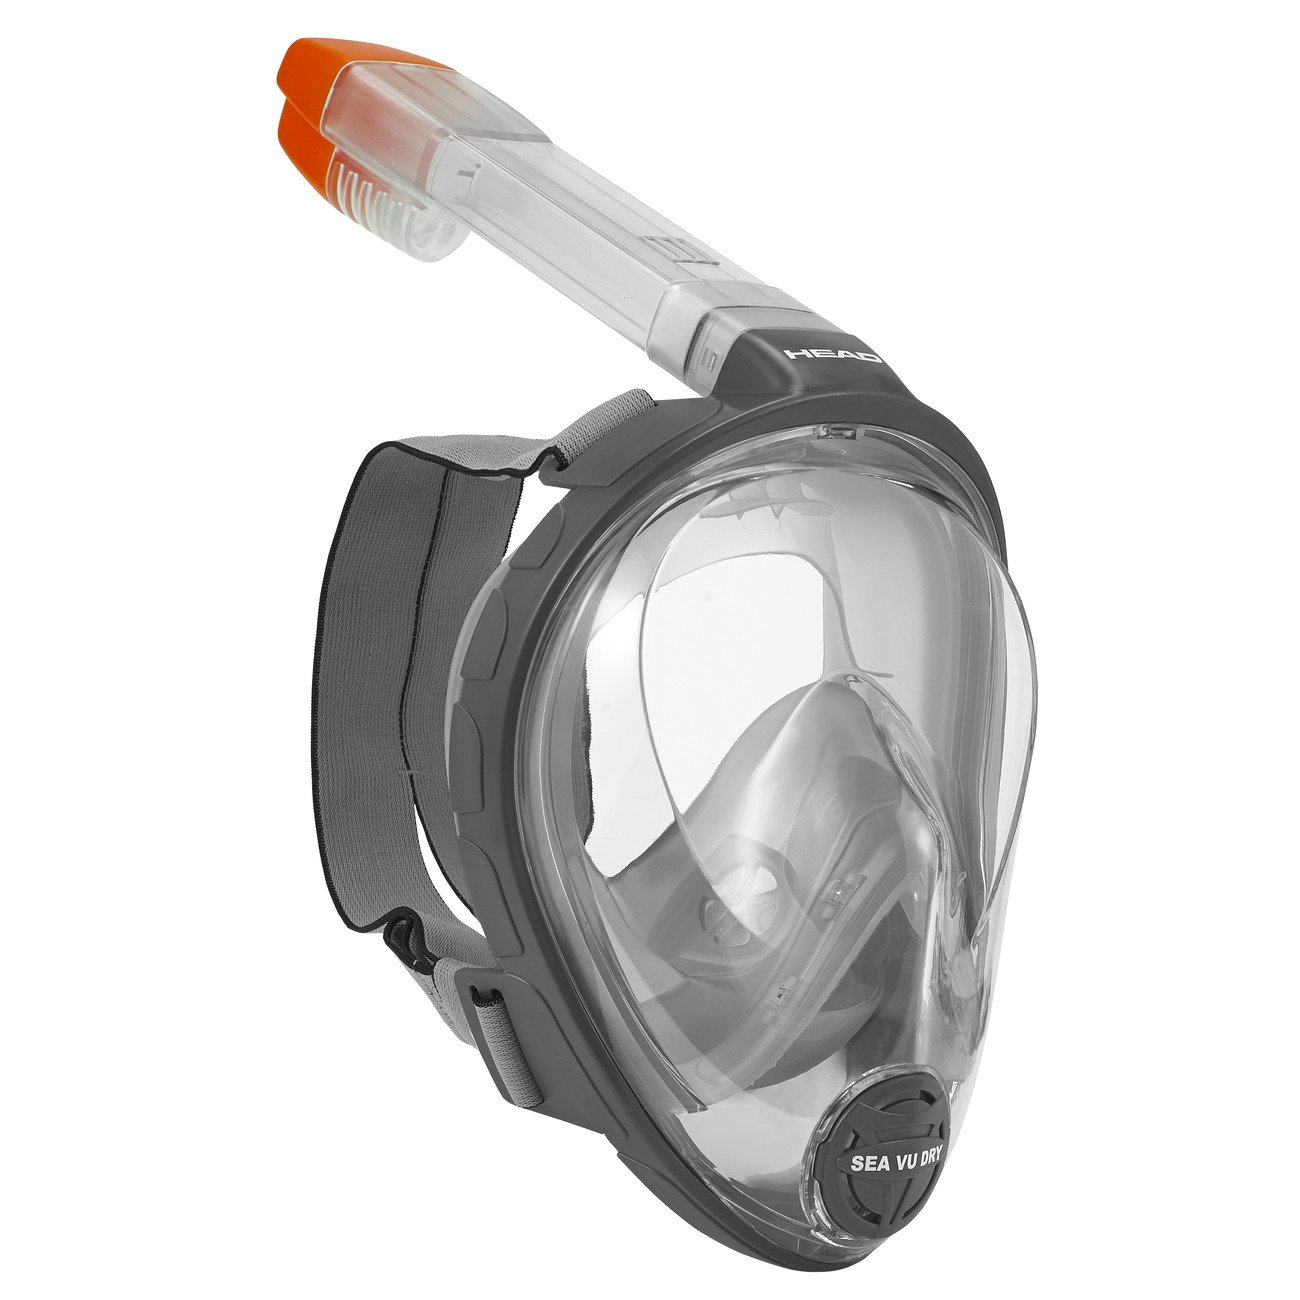 HEAD Sea Vu Dry Full Face Snorkeling Mask, Black/Grey - X-Small/Small (Made in Italy)